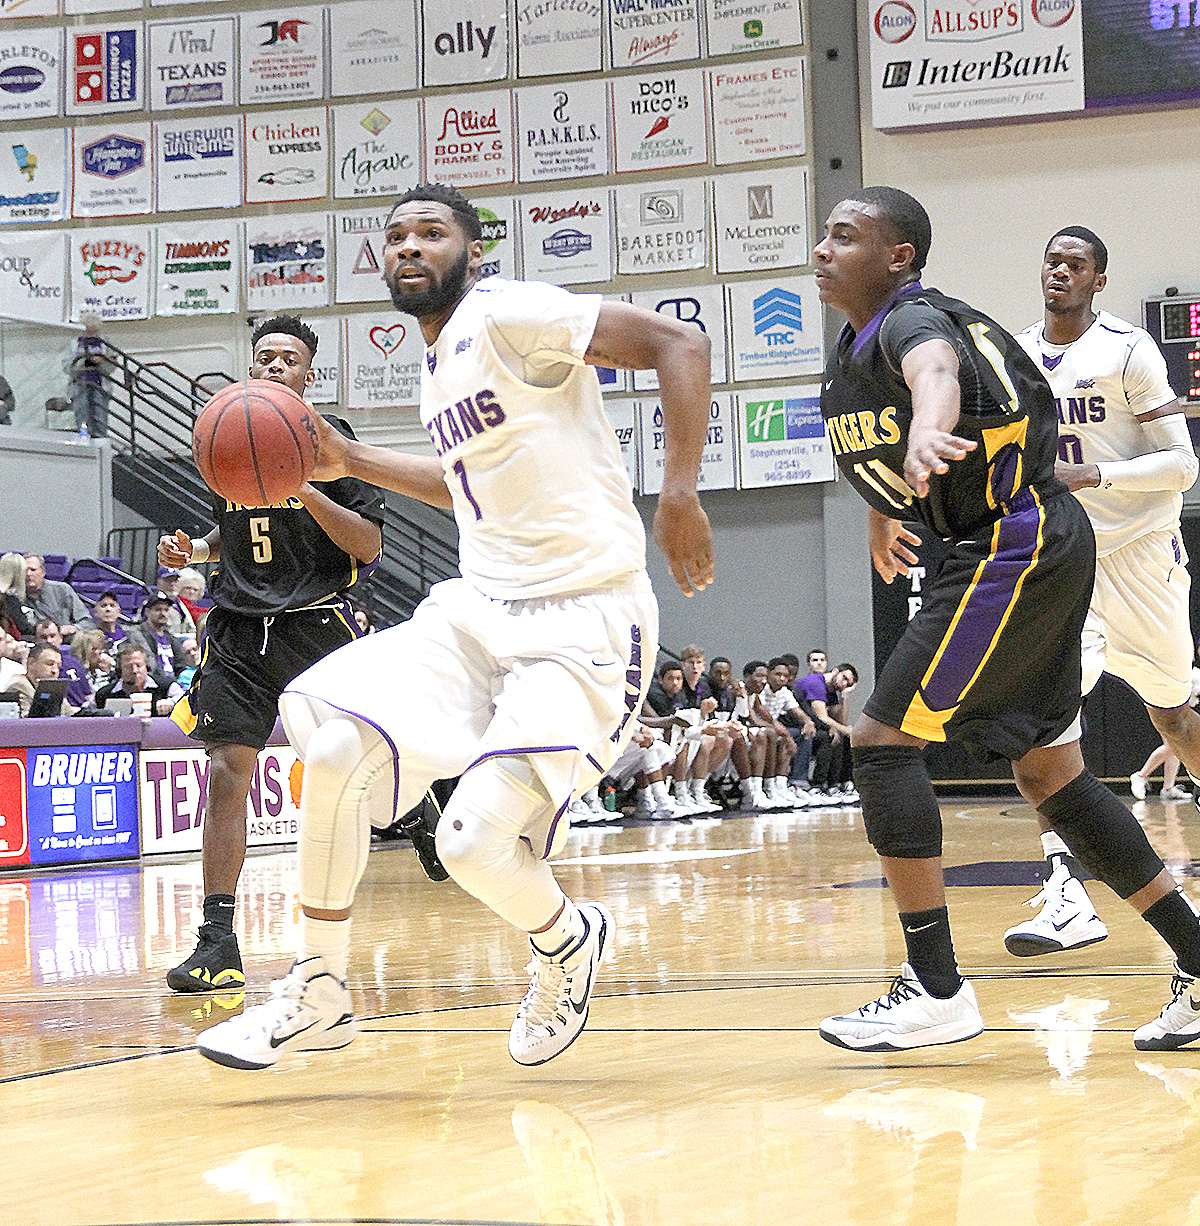 Tarleton State and Malcolm Hamilton host Midwestern State today, women at 5:30 p.m. and men at 7:30 at Wisdom Gym. || Photo courtesy Dr. CHET MARTIN